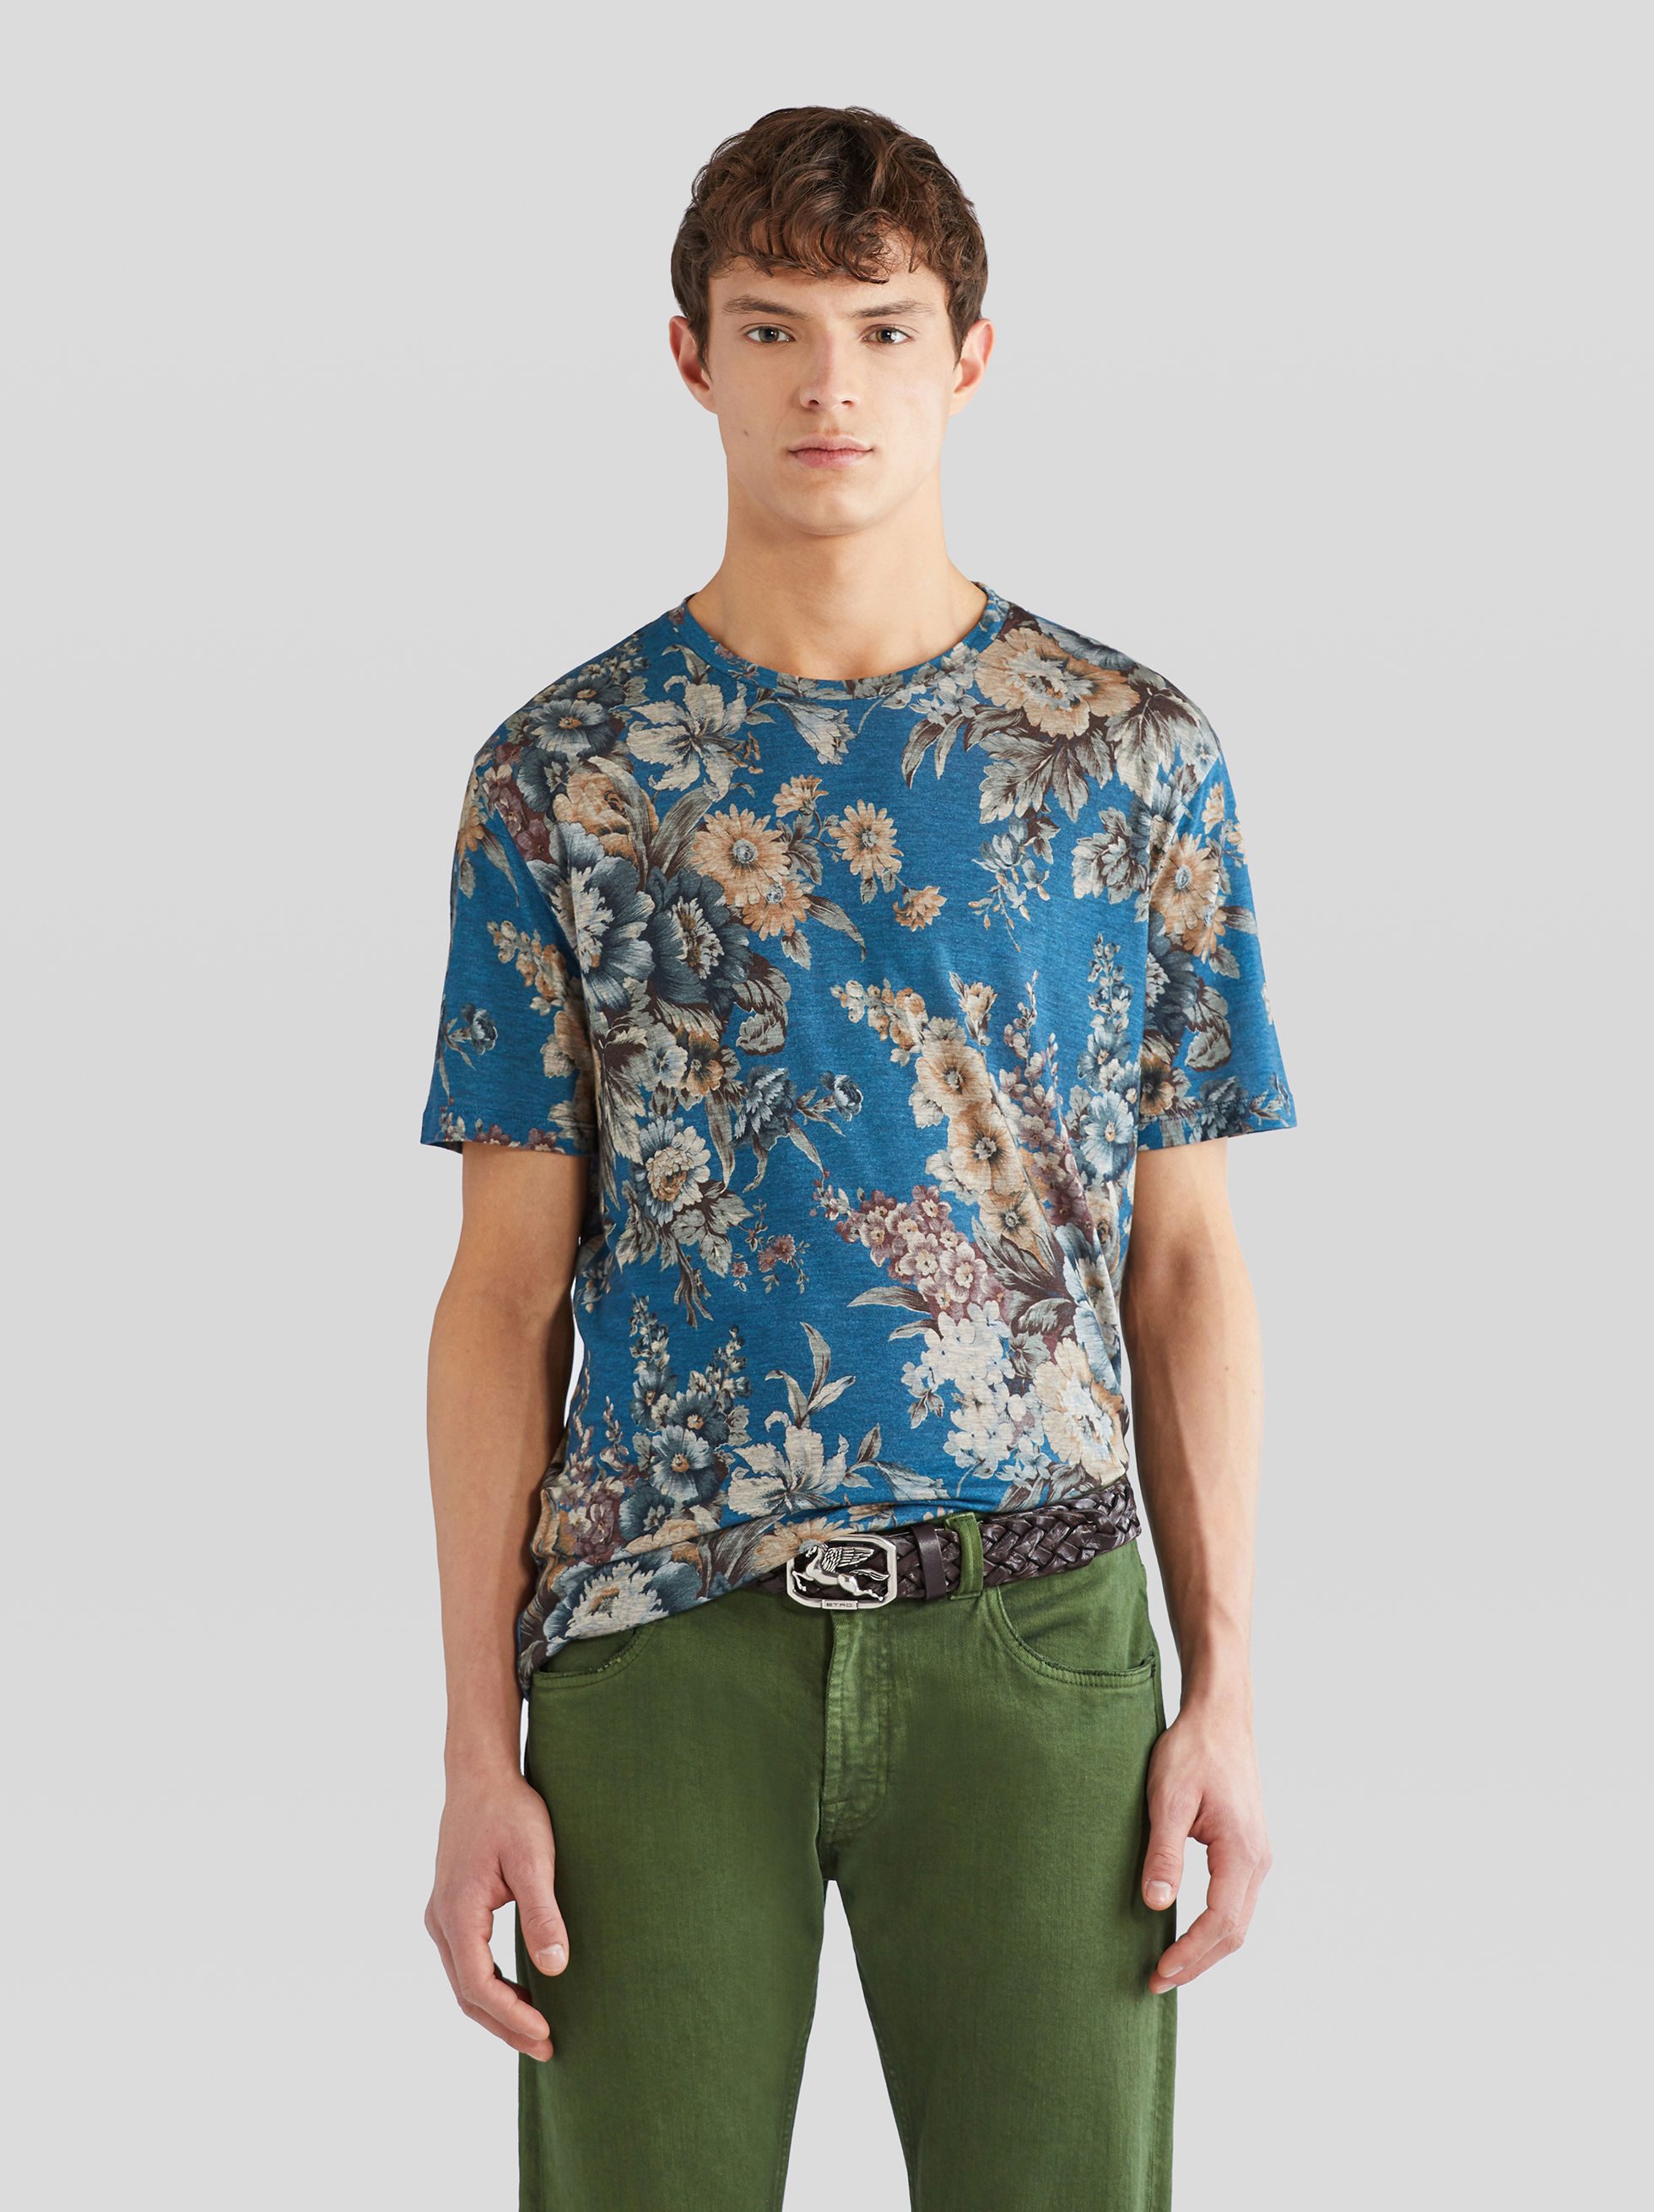 FLOWERED TENCEL ™ - LYOCELL BENETROESSERE T-SHIRT